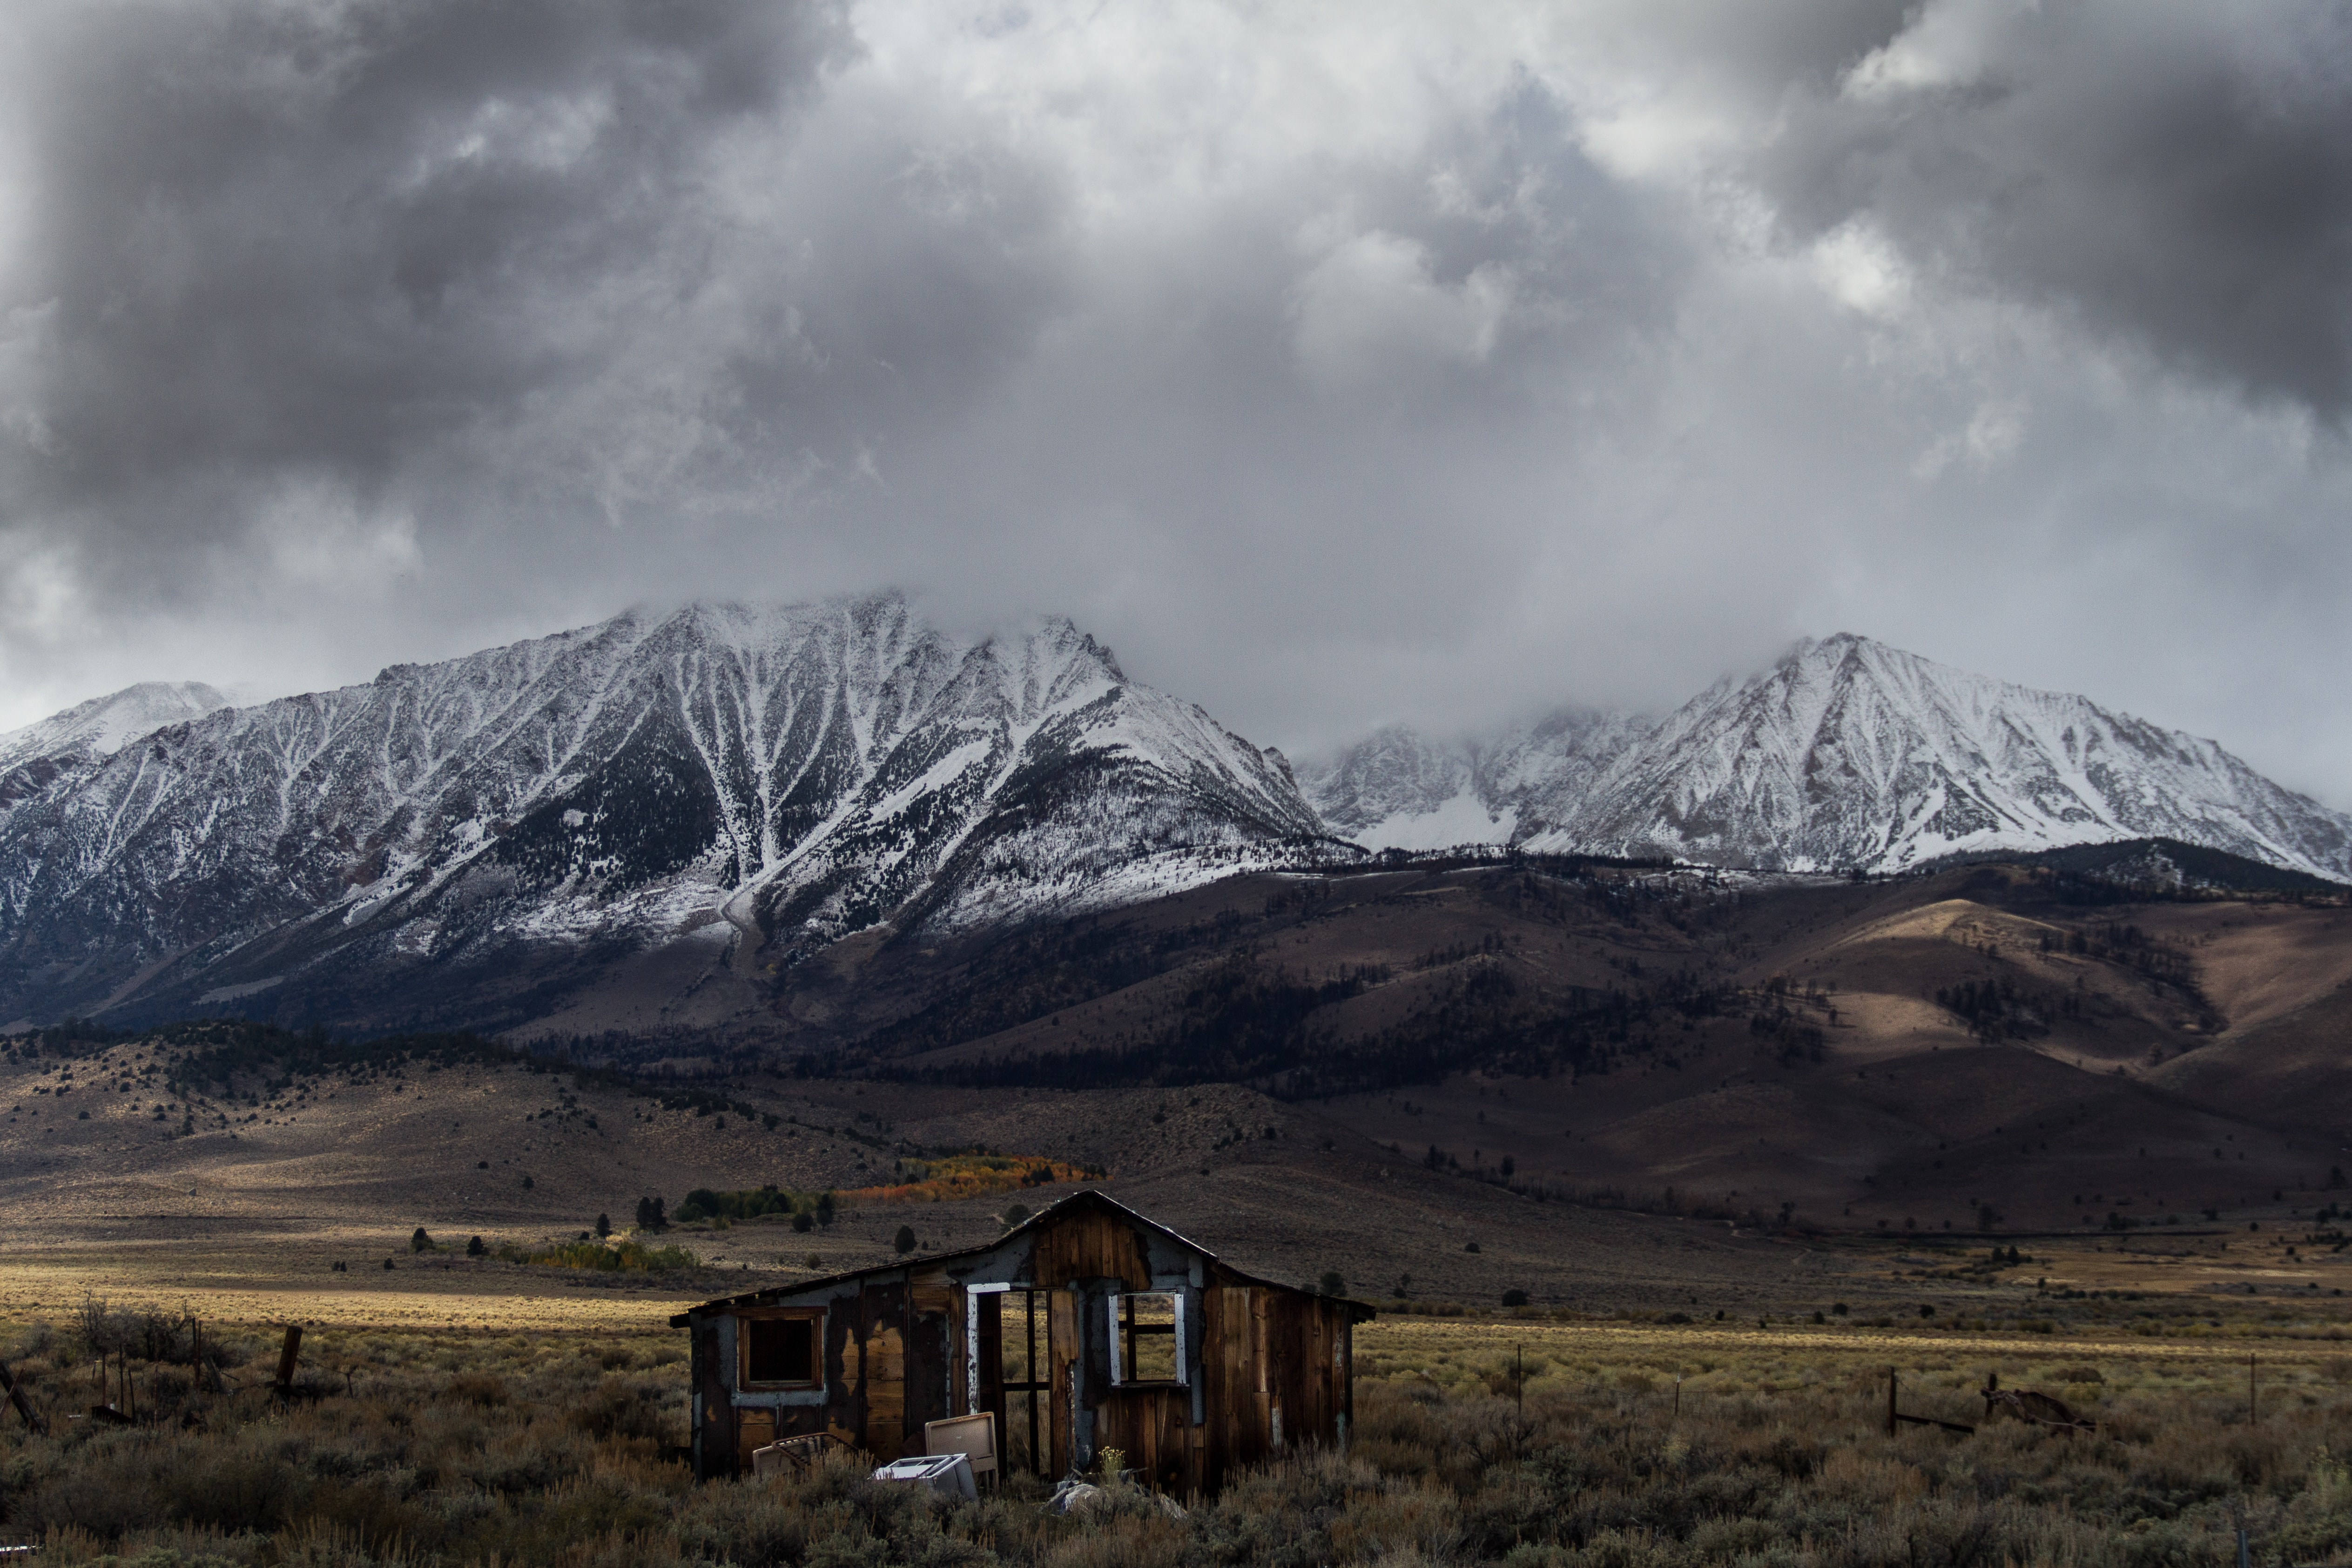 abandoned brown wooden cabin at middle of valley with view of snow-covered mountain range under gray cloud formation during daytime